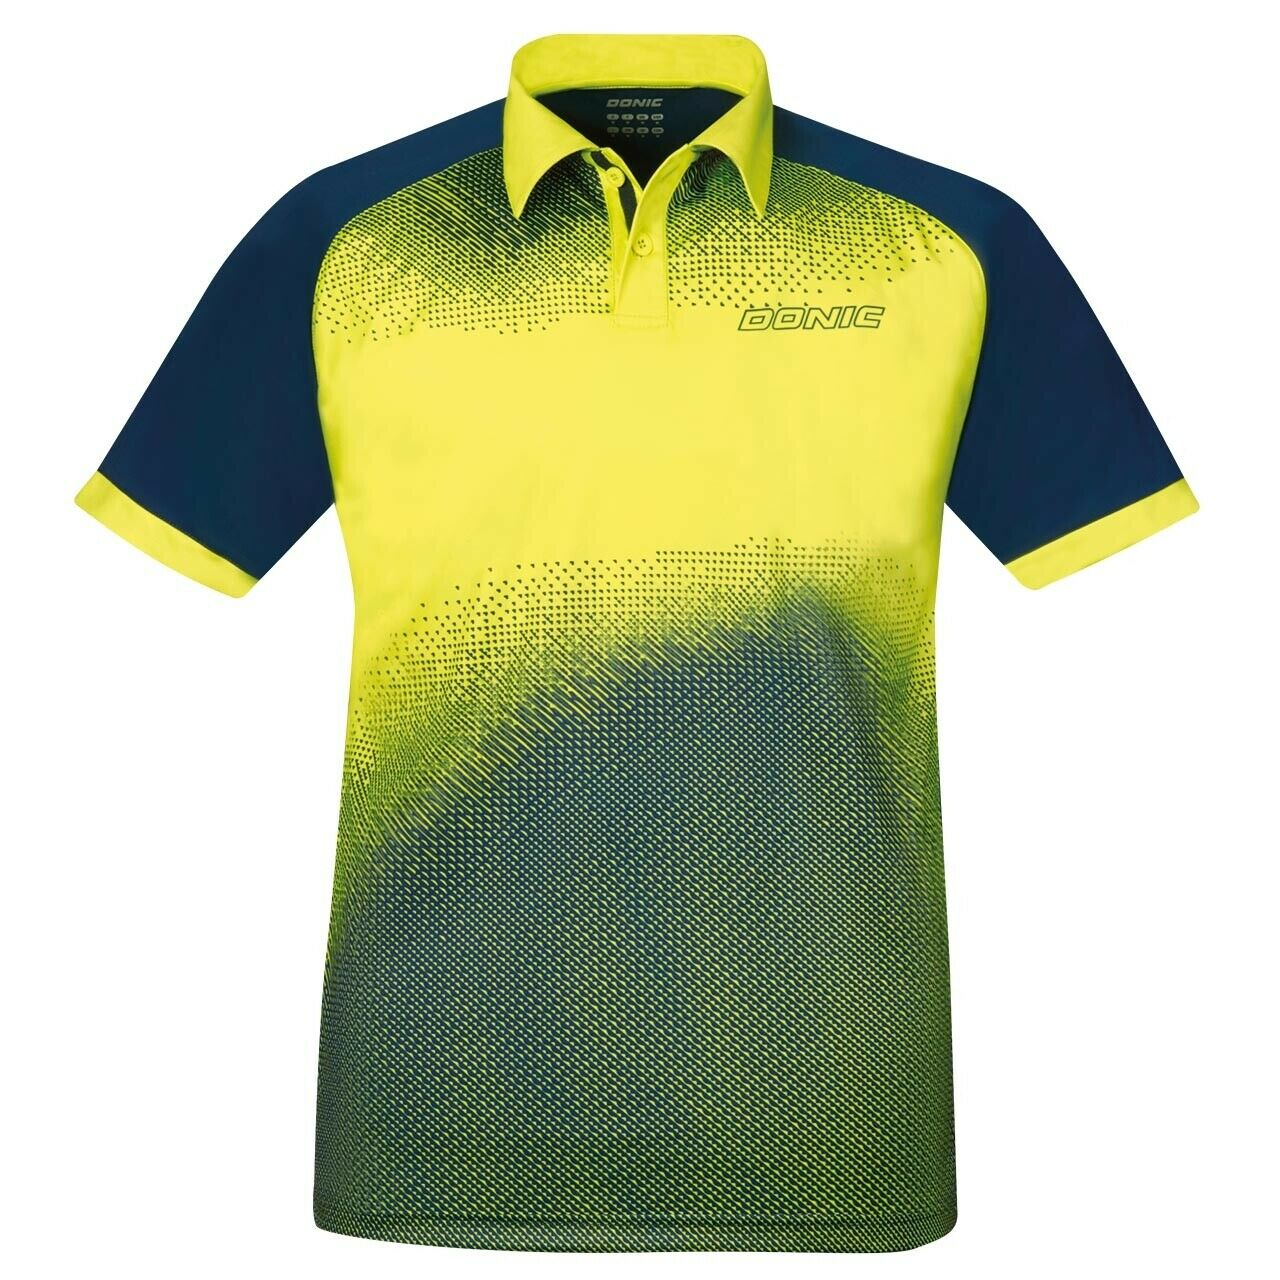 Donic Polo Blitz  3 Coloreei Badminton PingPong Polo